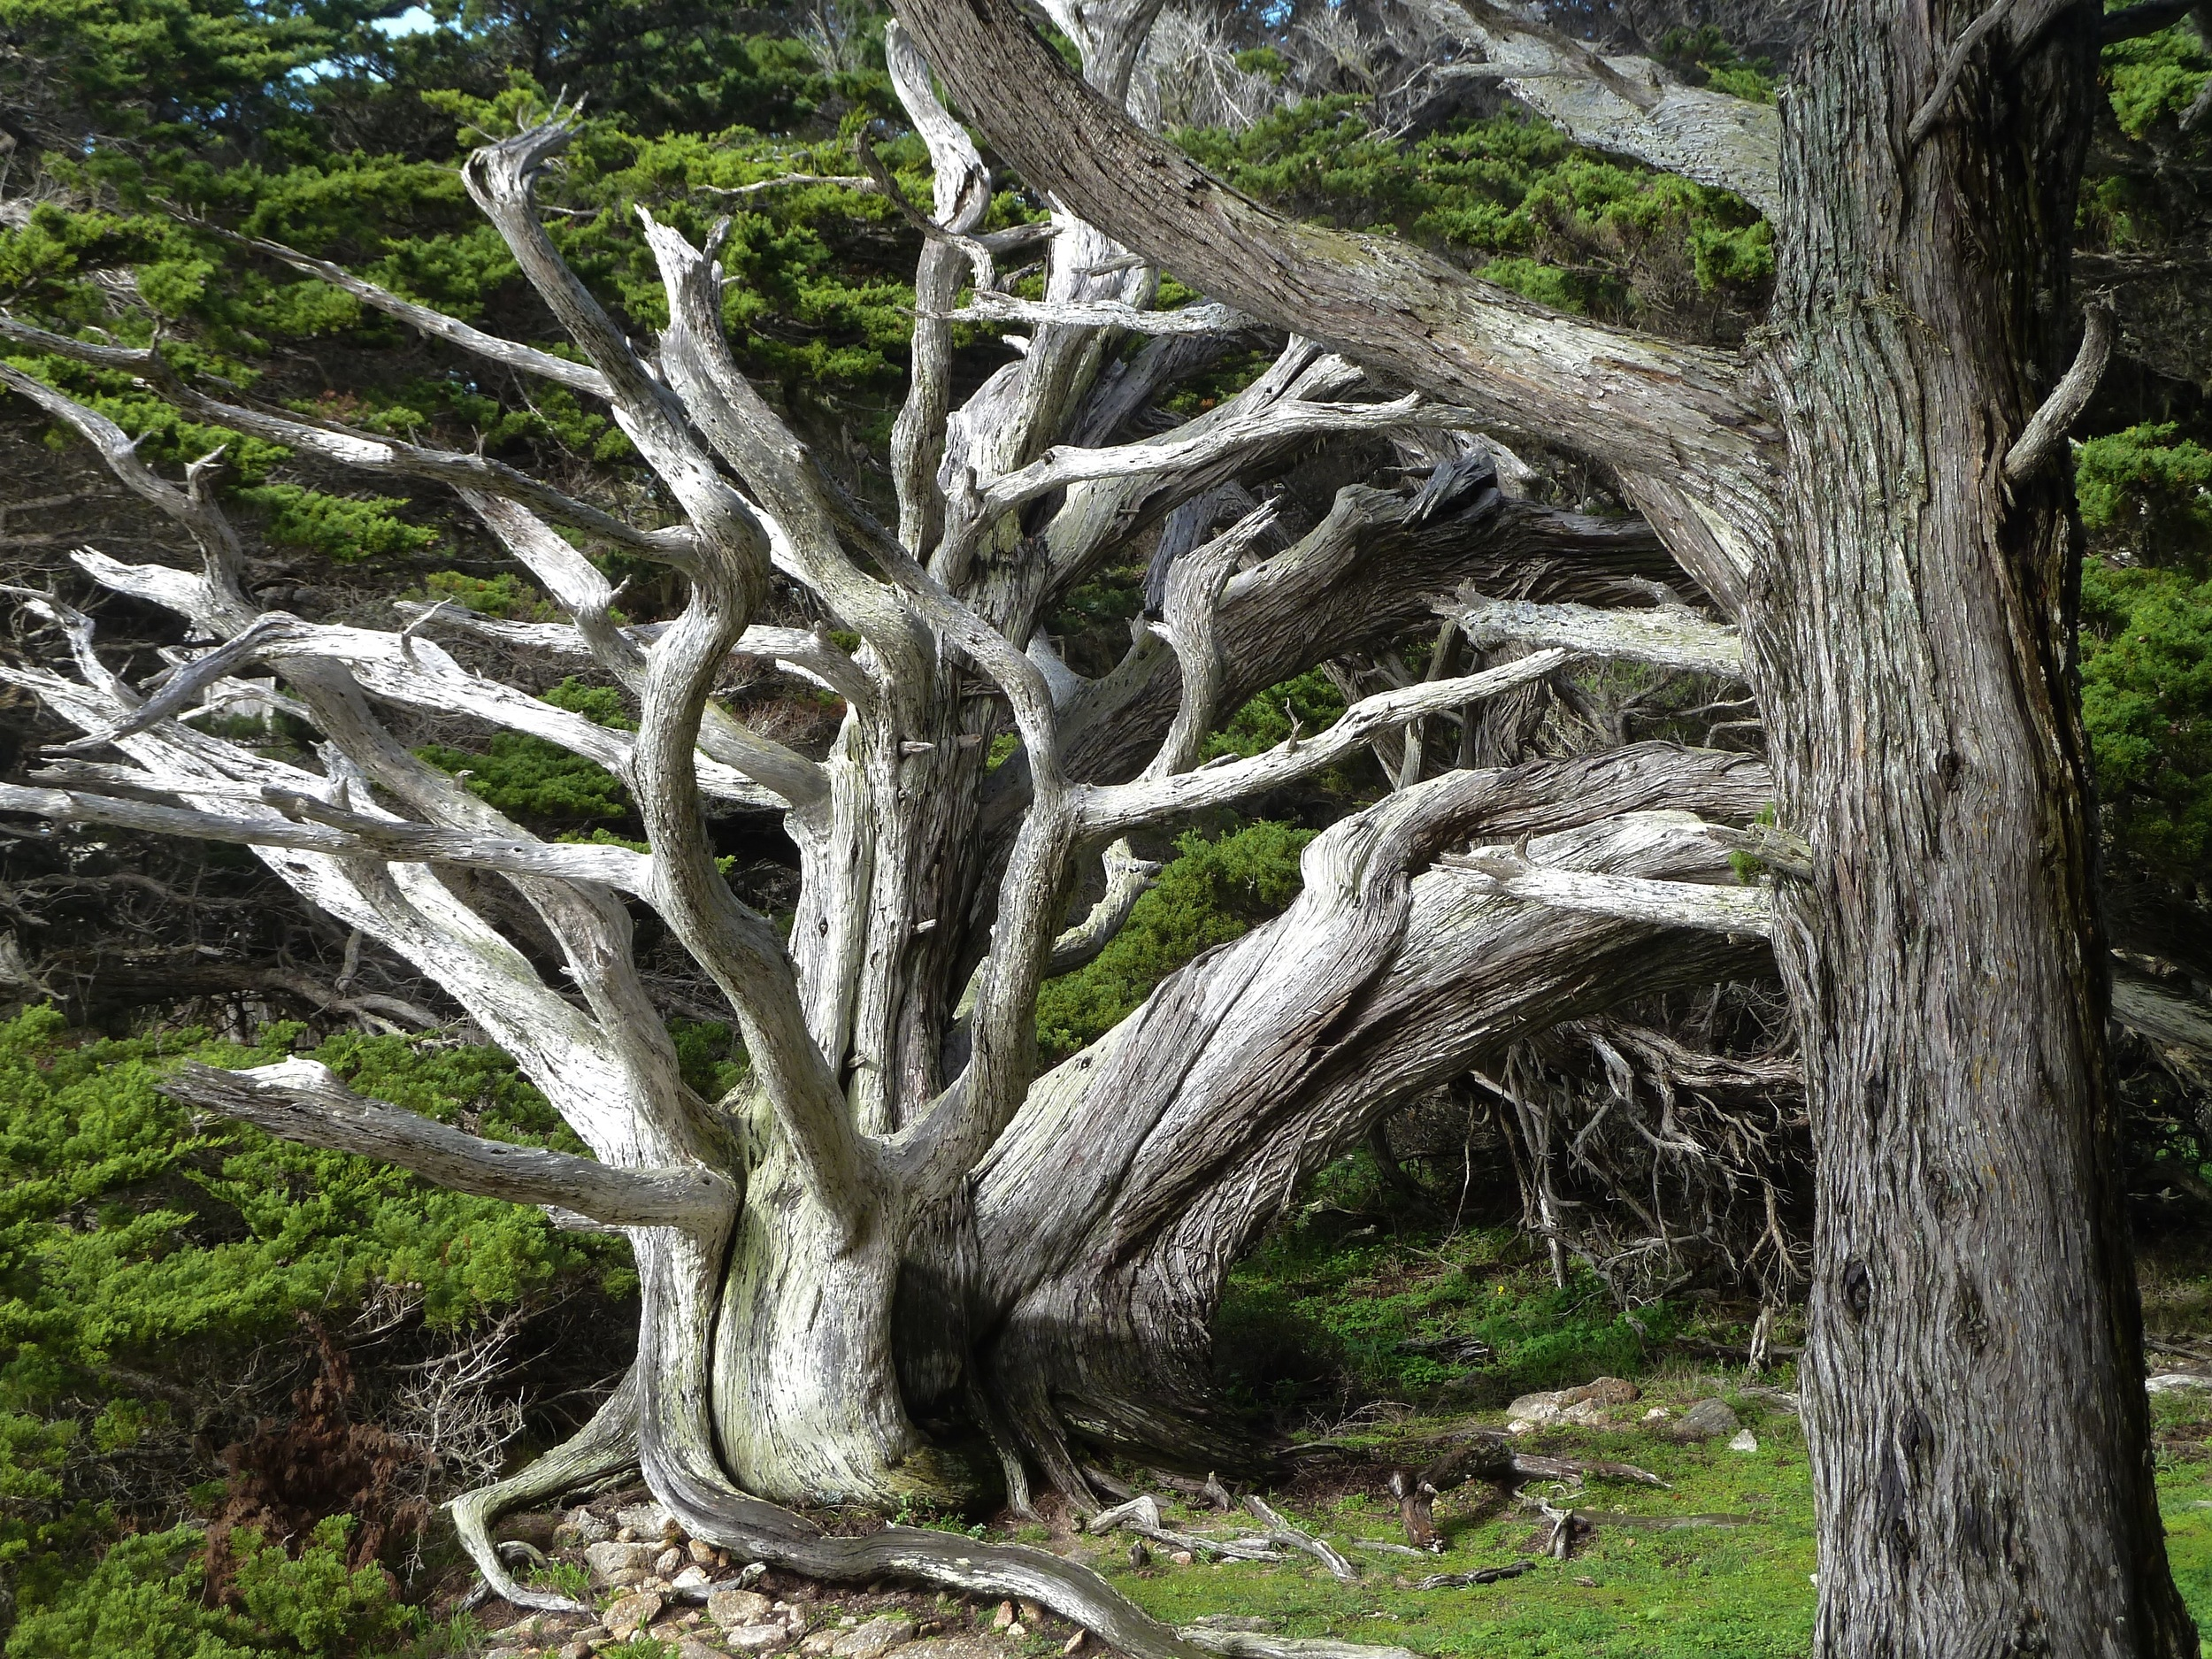 Monterey cypress, Point Lobos State Reserve.